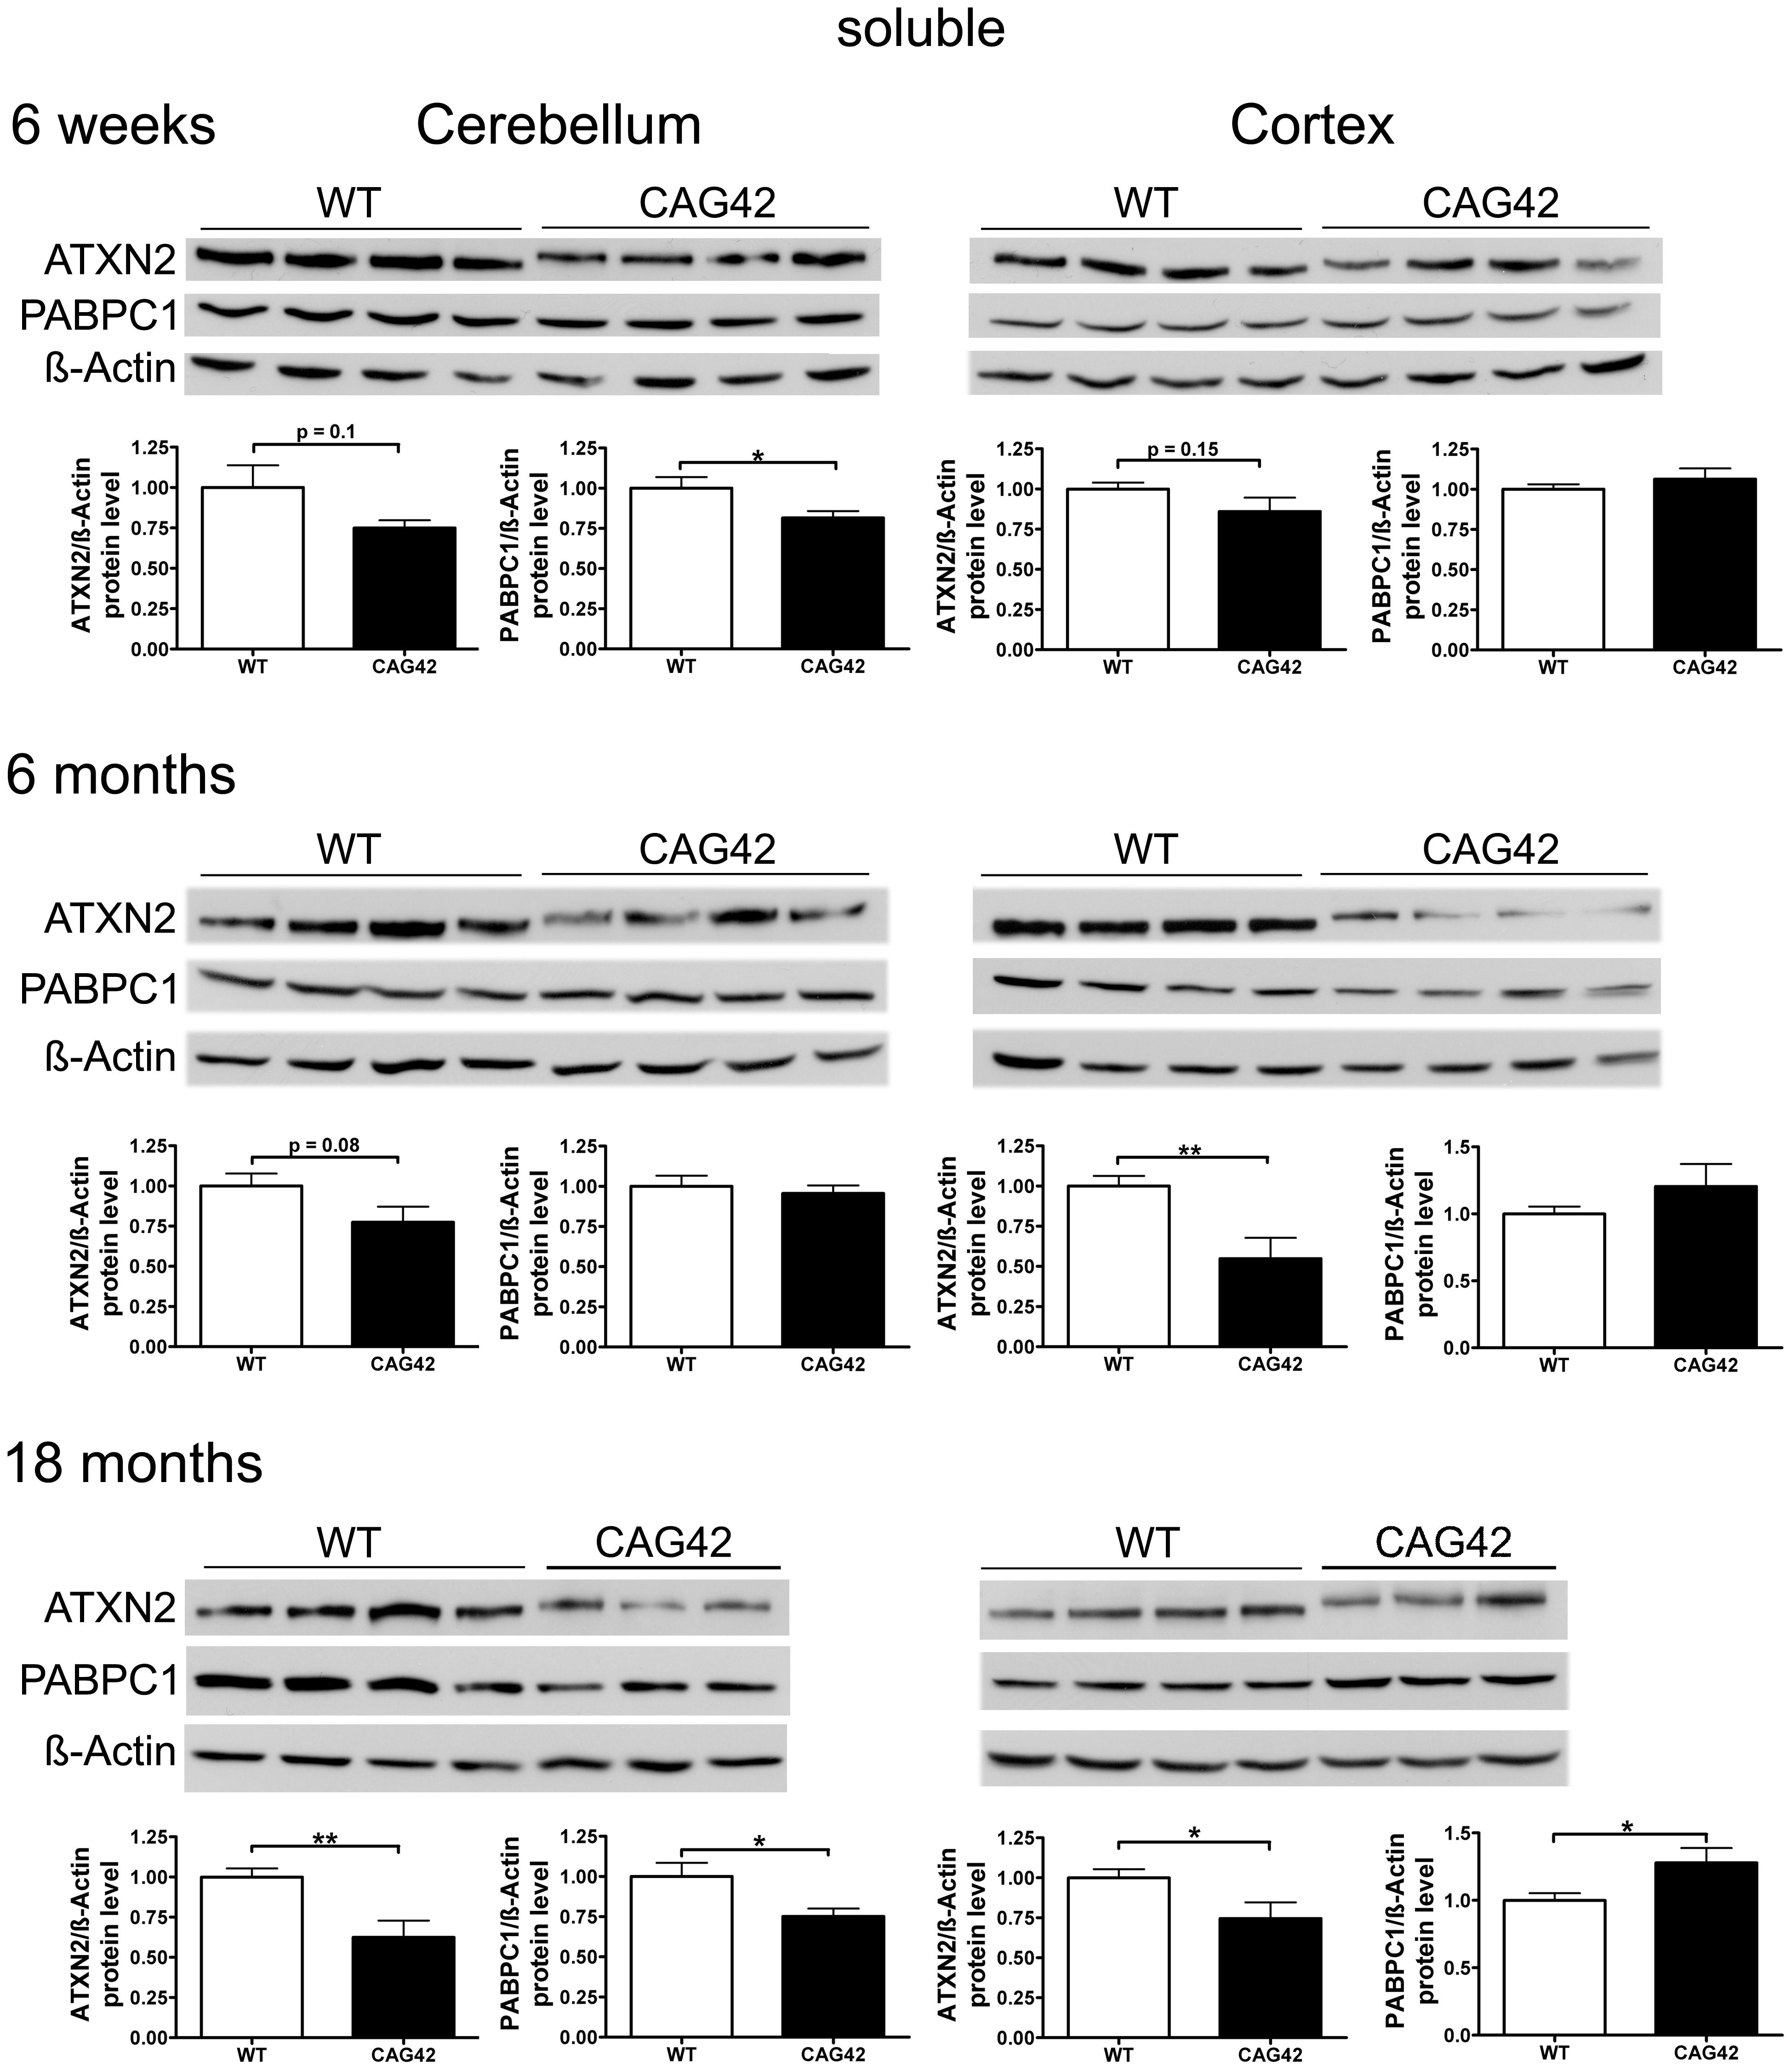 Soluble ATXN2 protein levels are reduced and PABPC1 levels change.